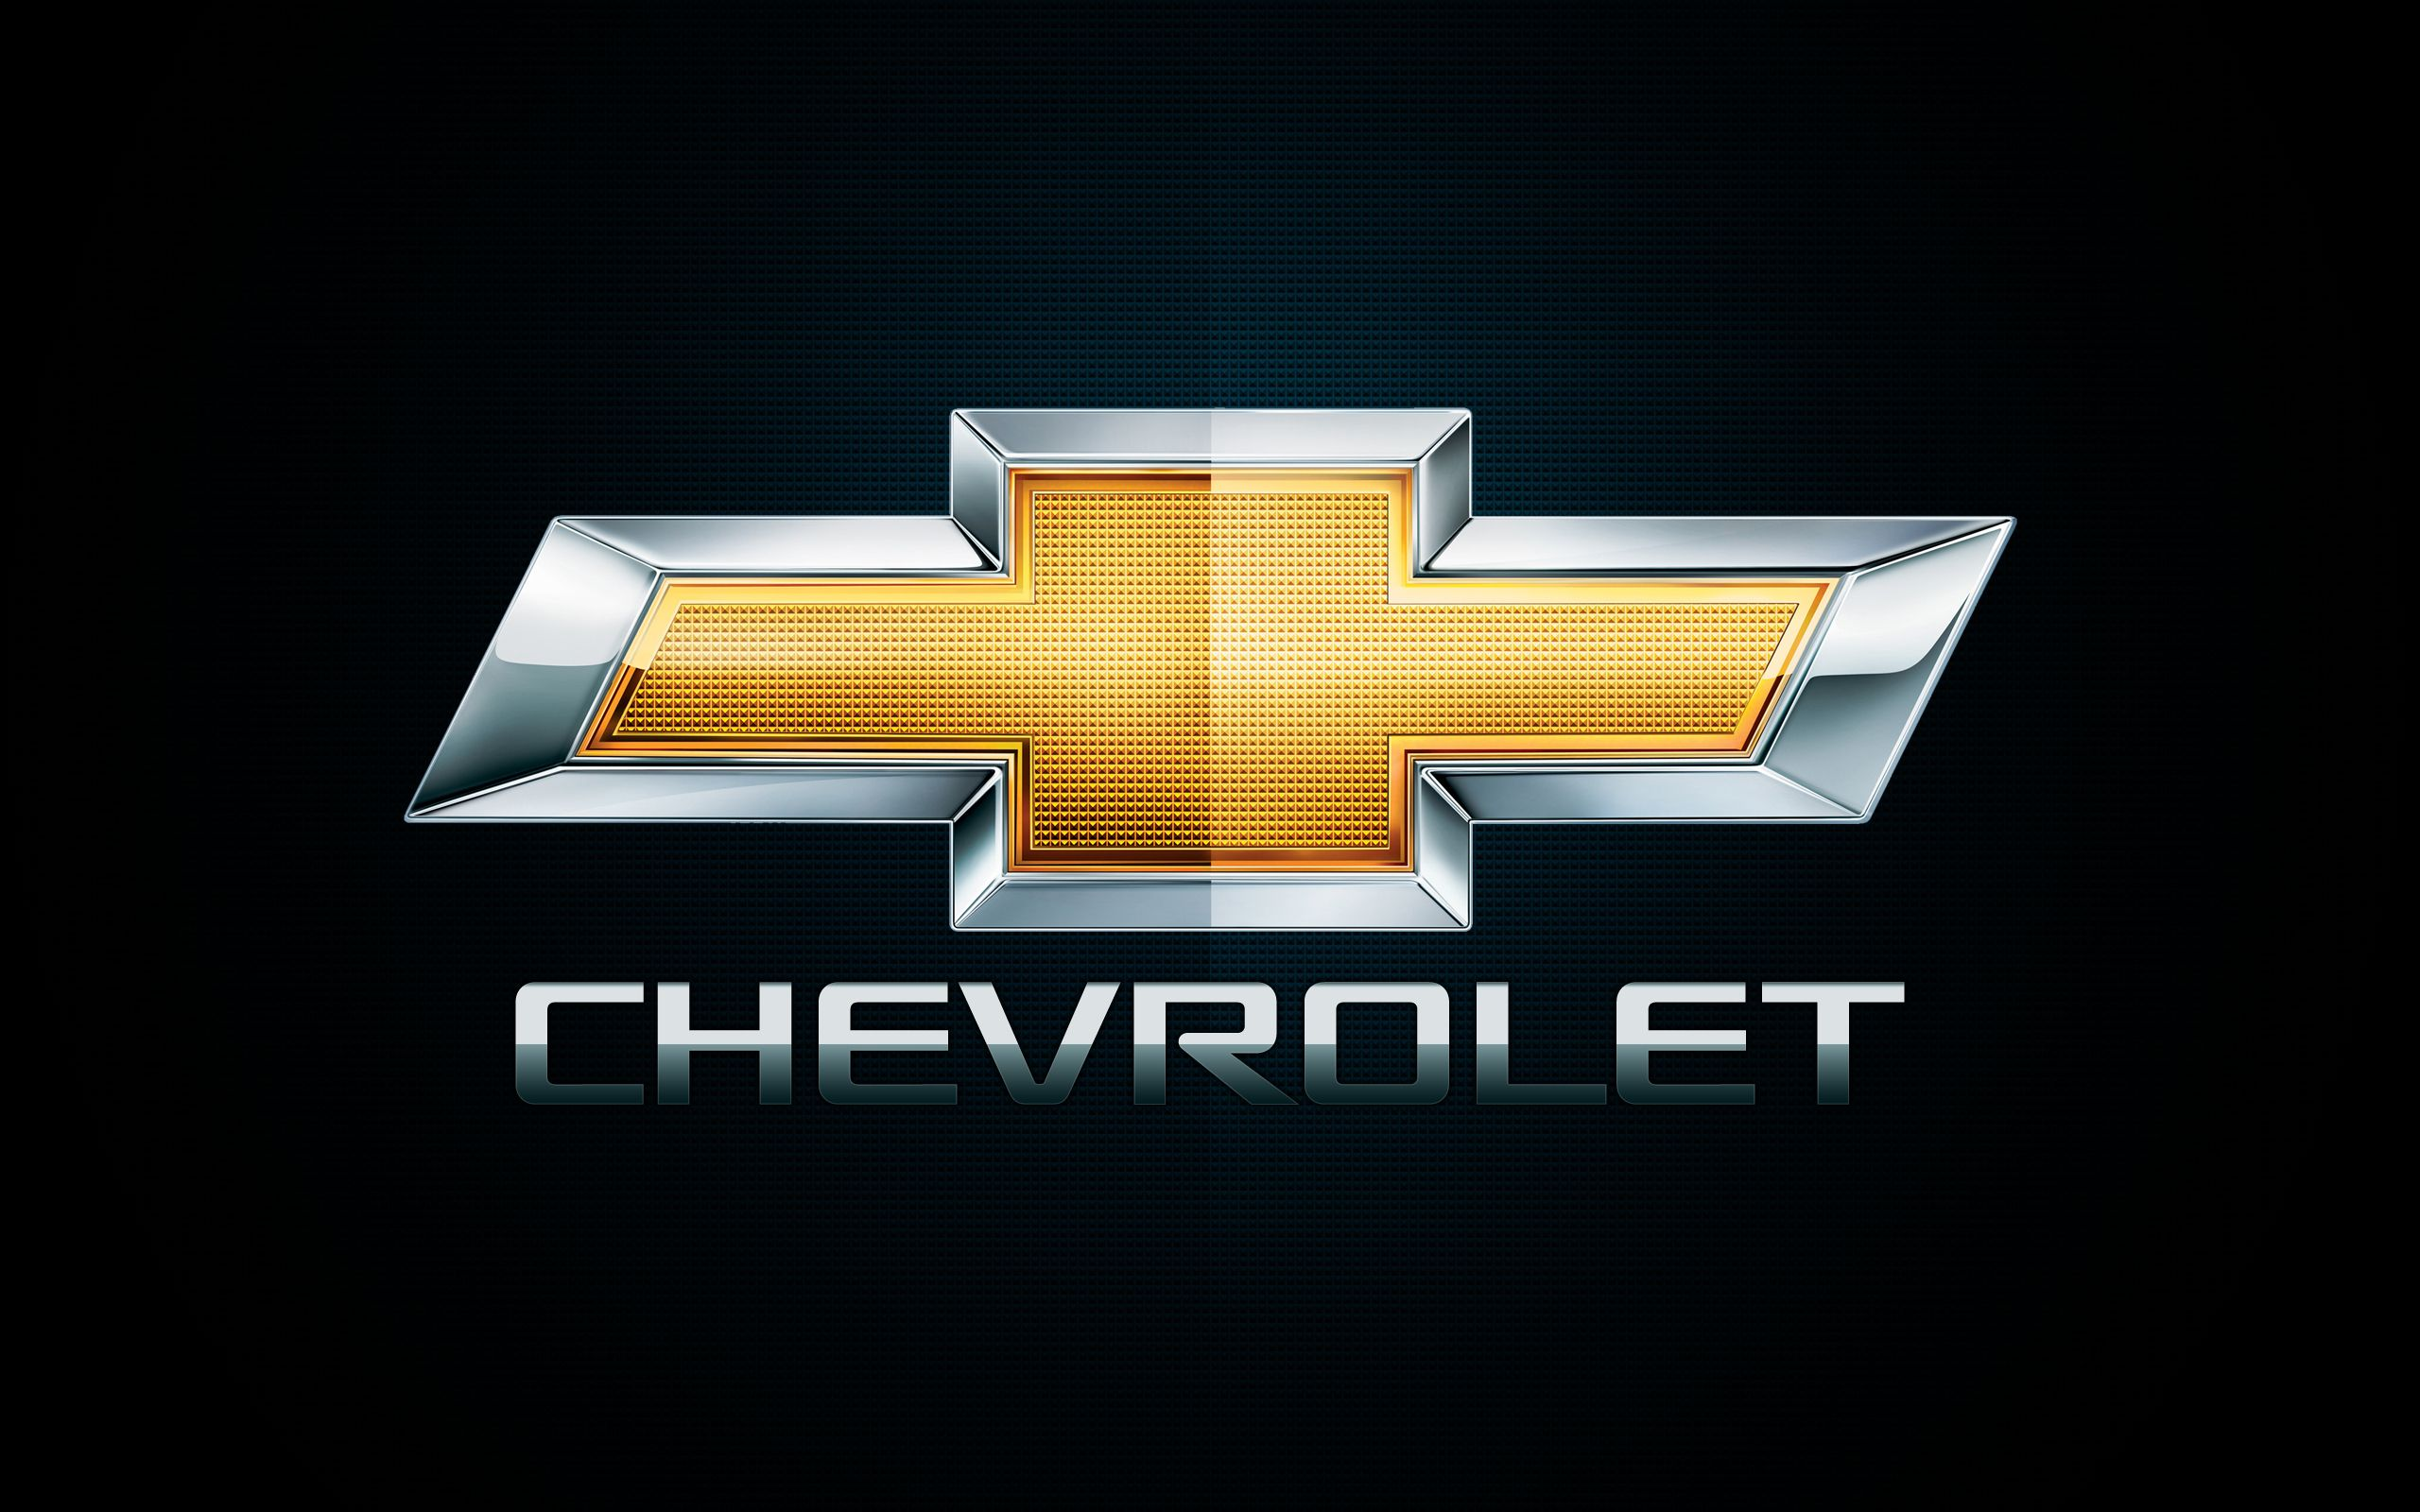 Chevrolet Logo Chevrolet Wallpaper Chevy Chevy Quotes